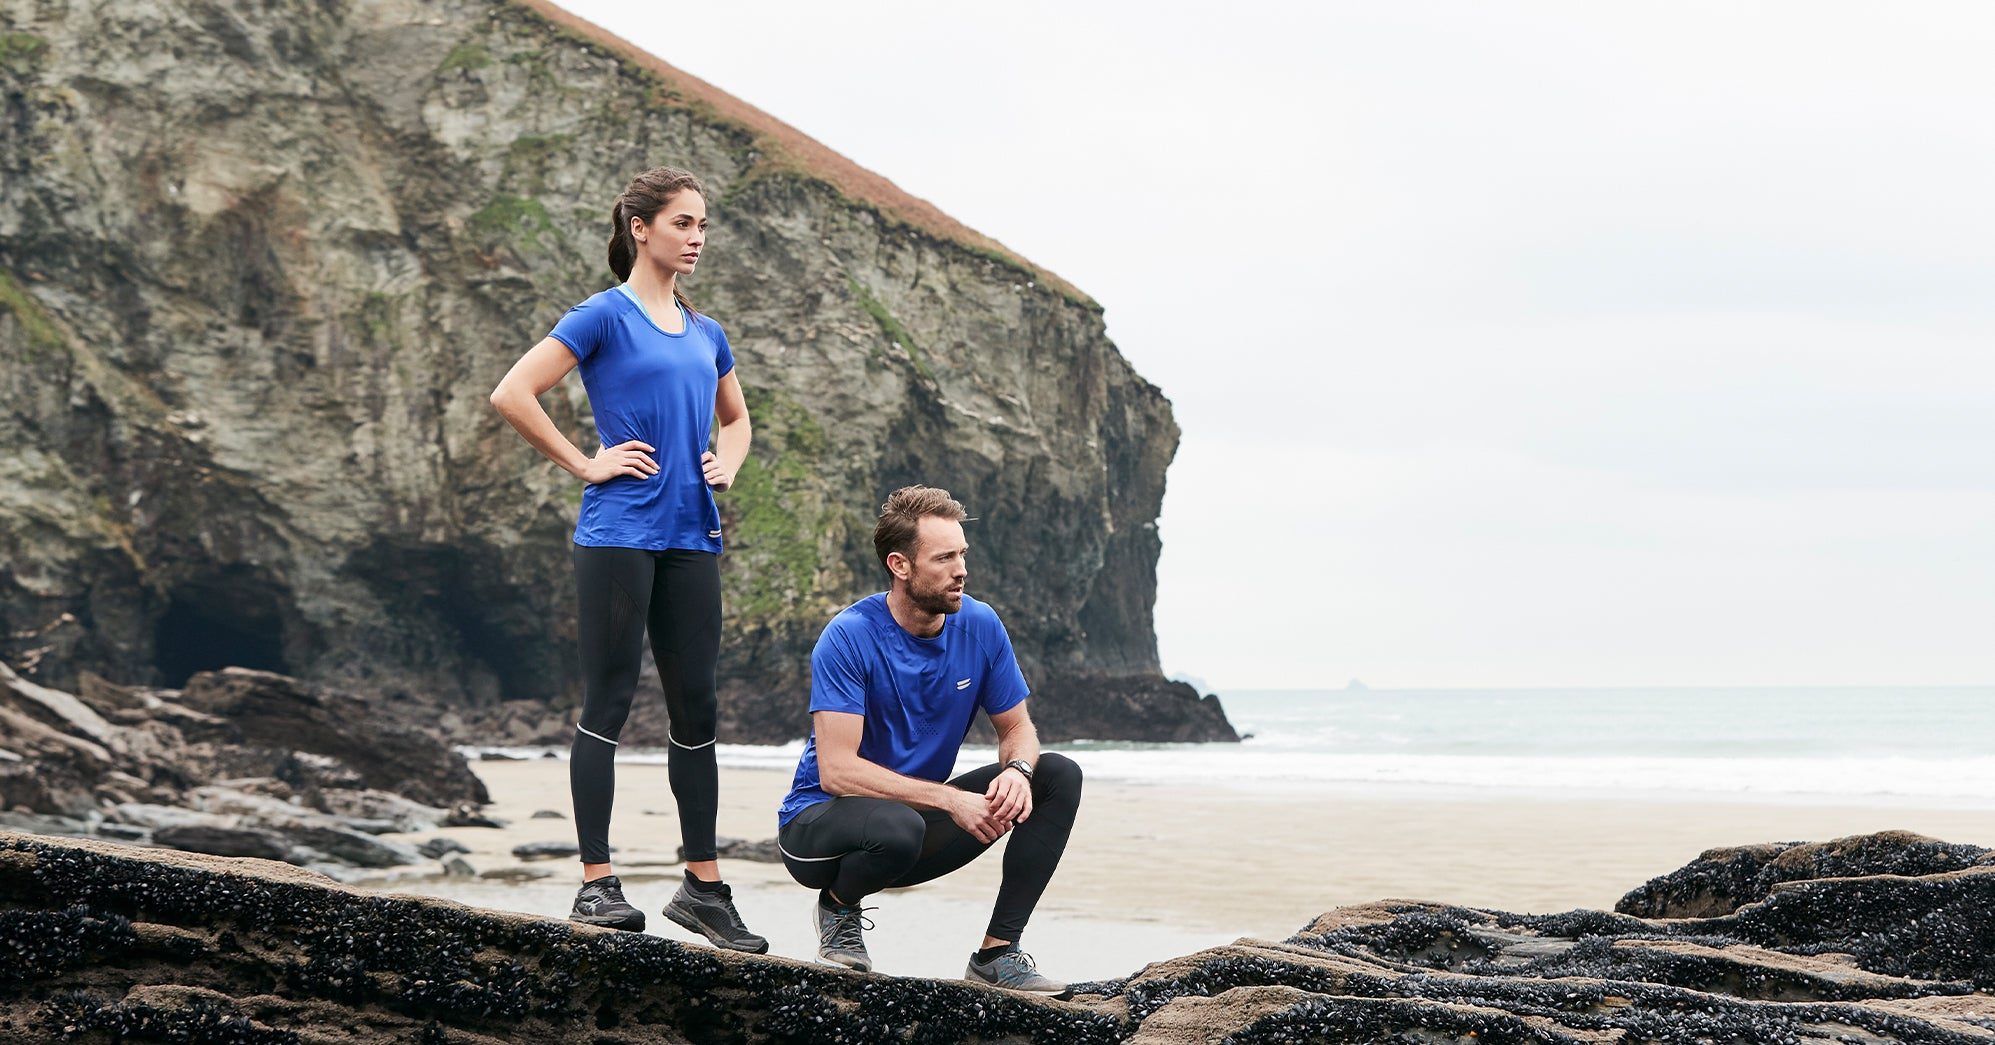 Introducing our sustainable Endure range